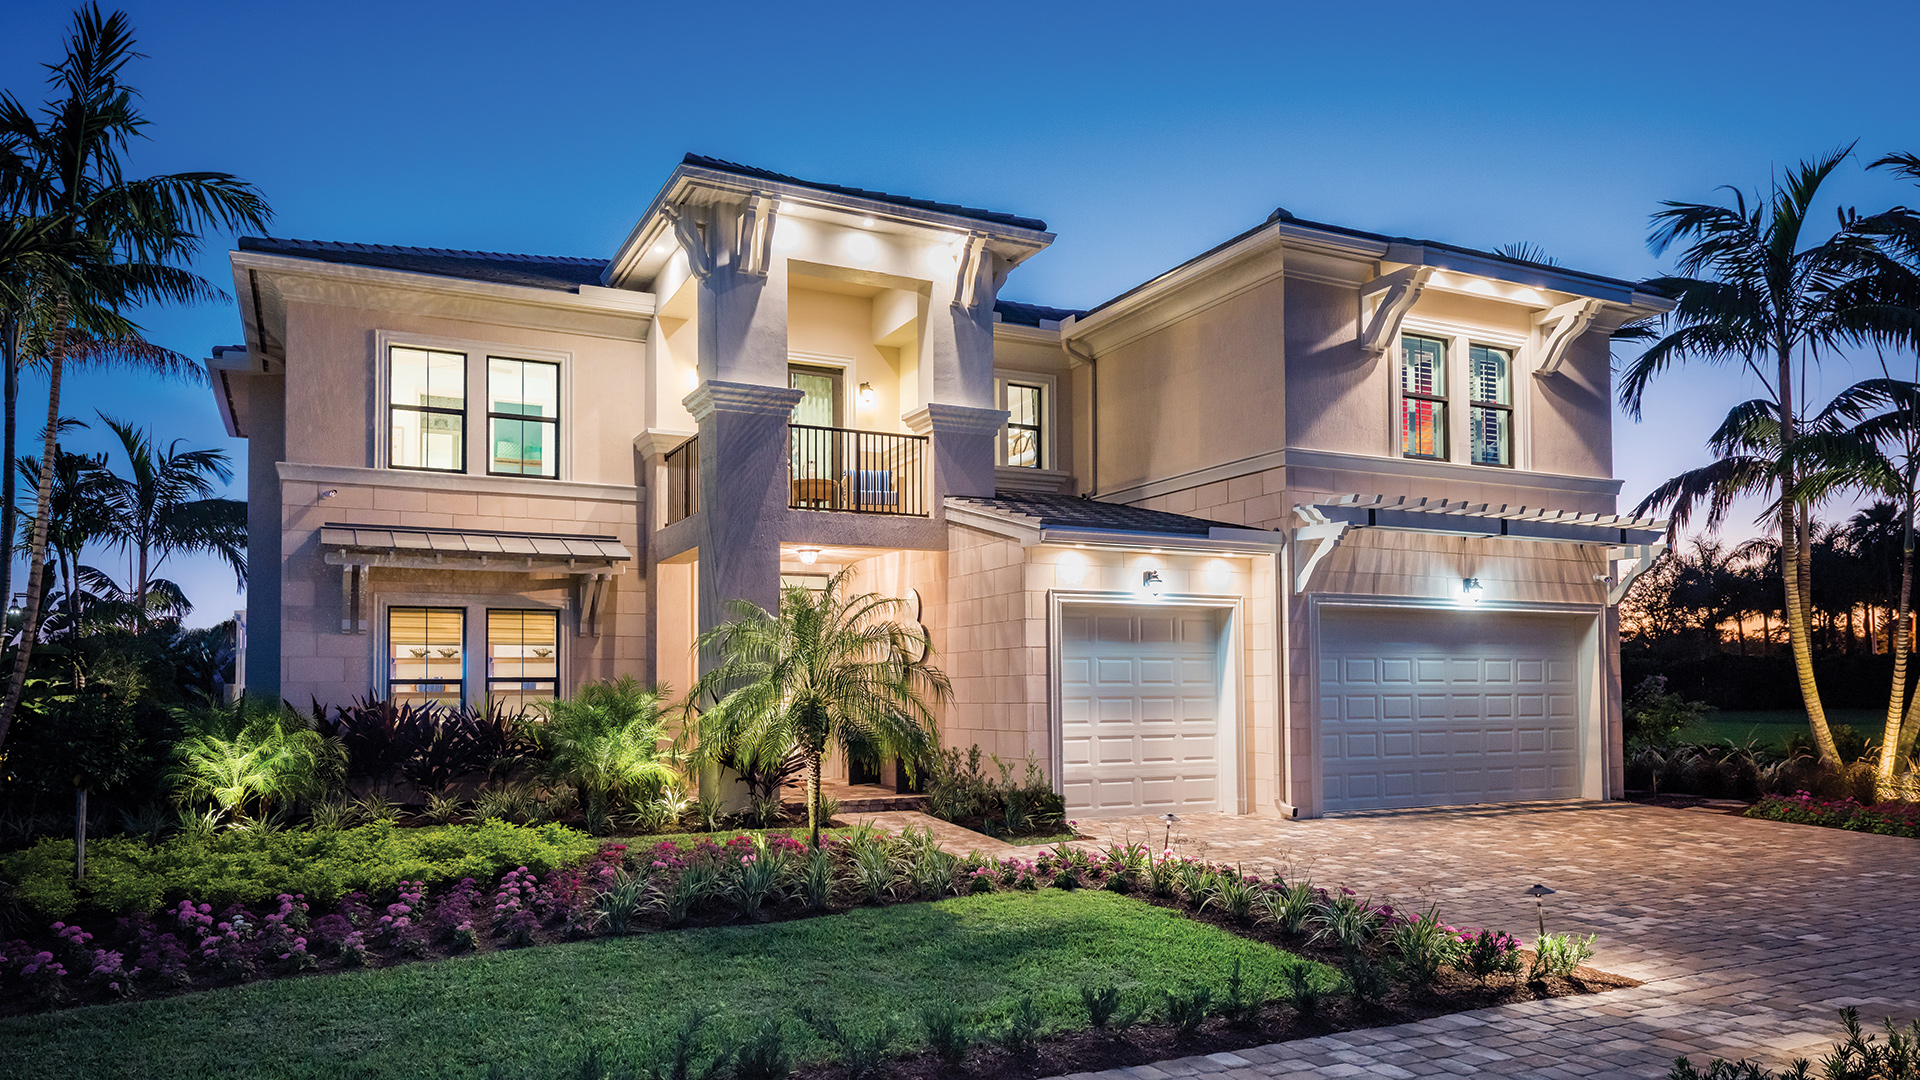 Boca raton fl new homes for sale royal palm polo for Top 10 luxury homes